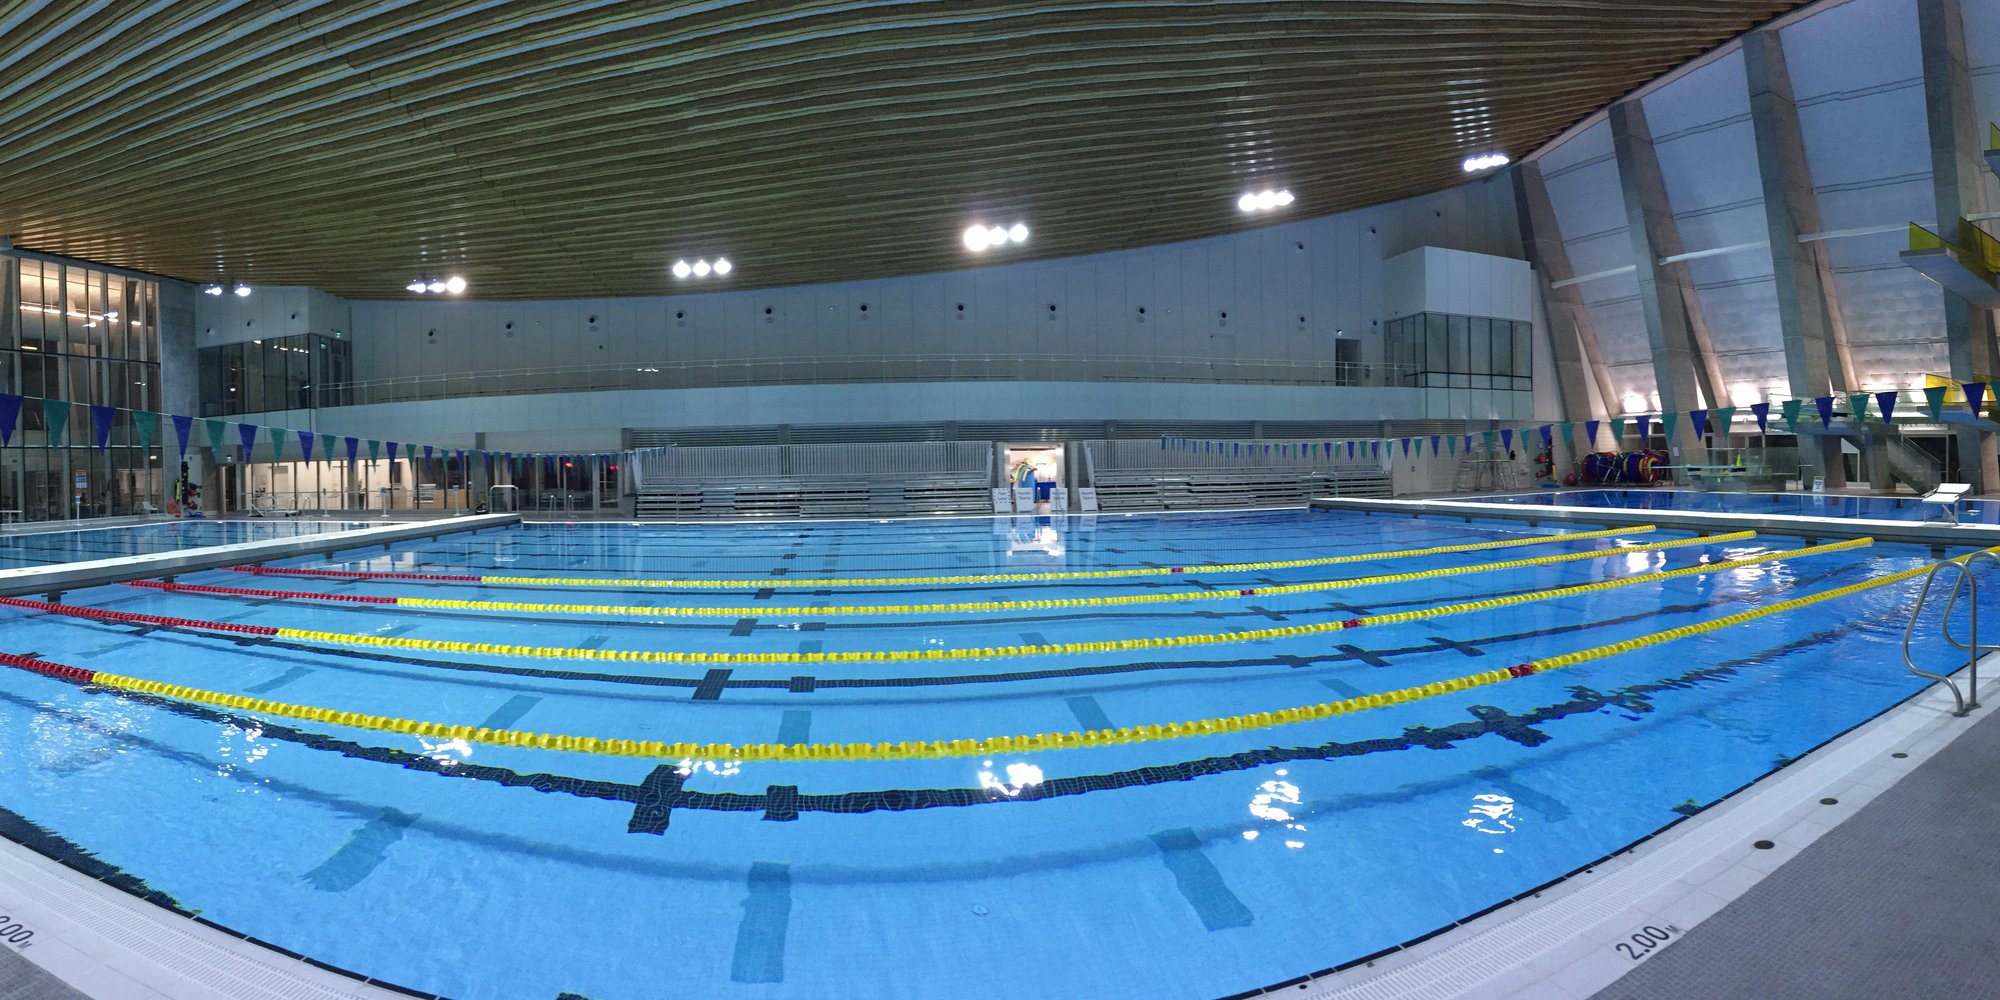 We shot scenes underwater at the Grandview Heights Aquatic Centre. The team there were super accommodating for our shoot!